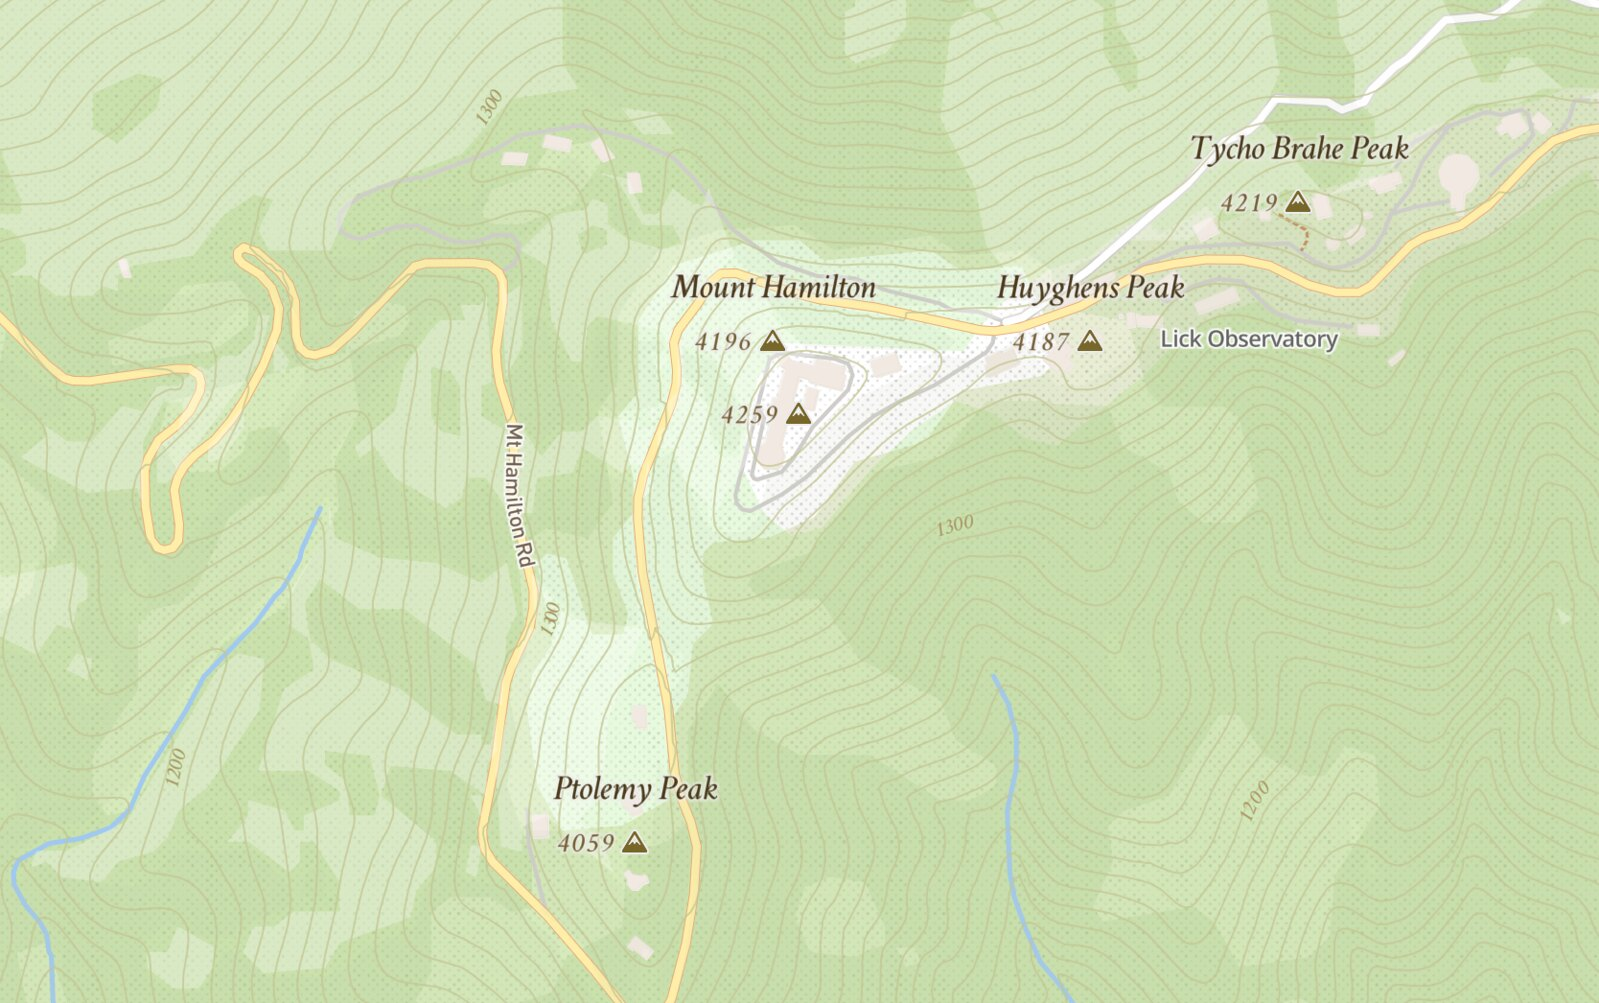 Peak elevations in feet and meters with Mapbox Streets